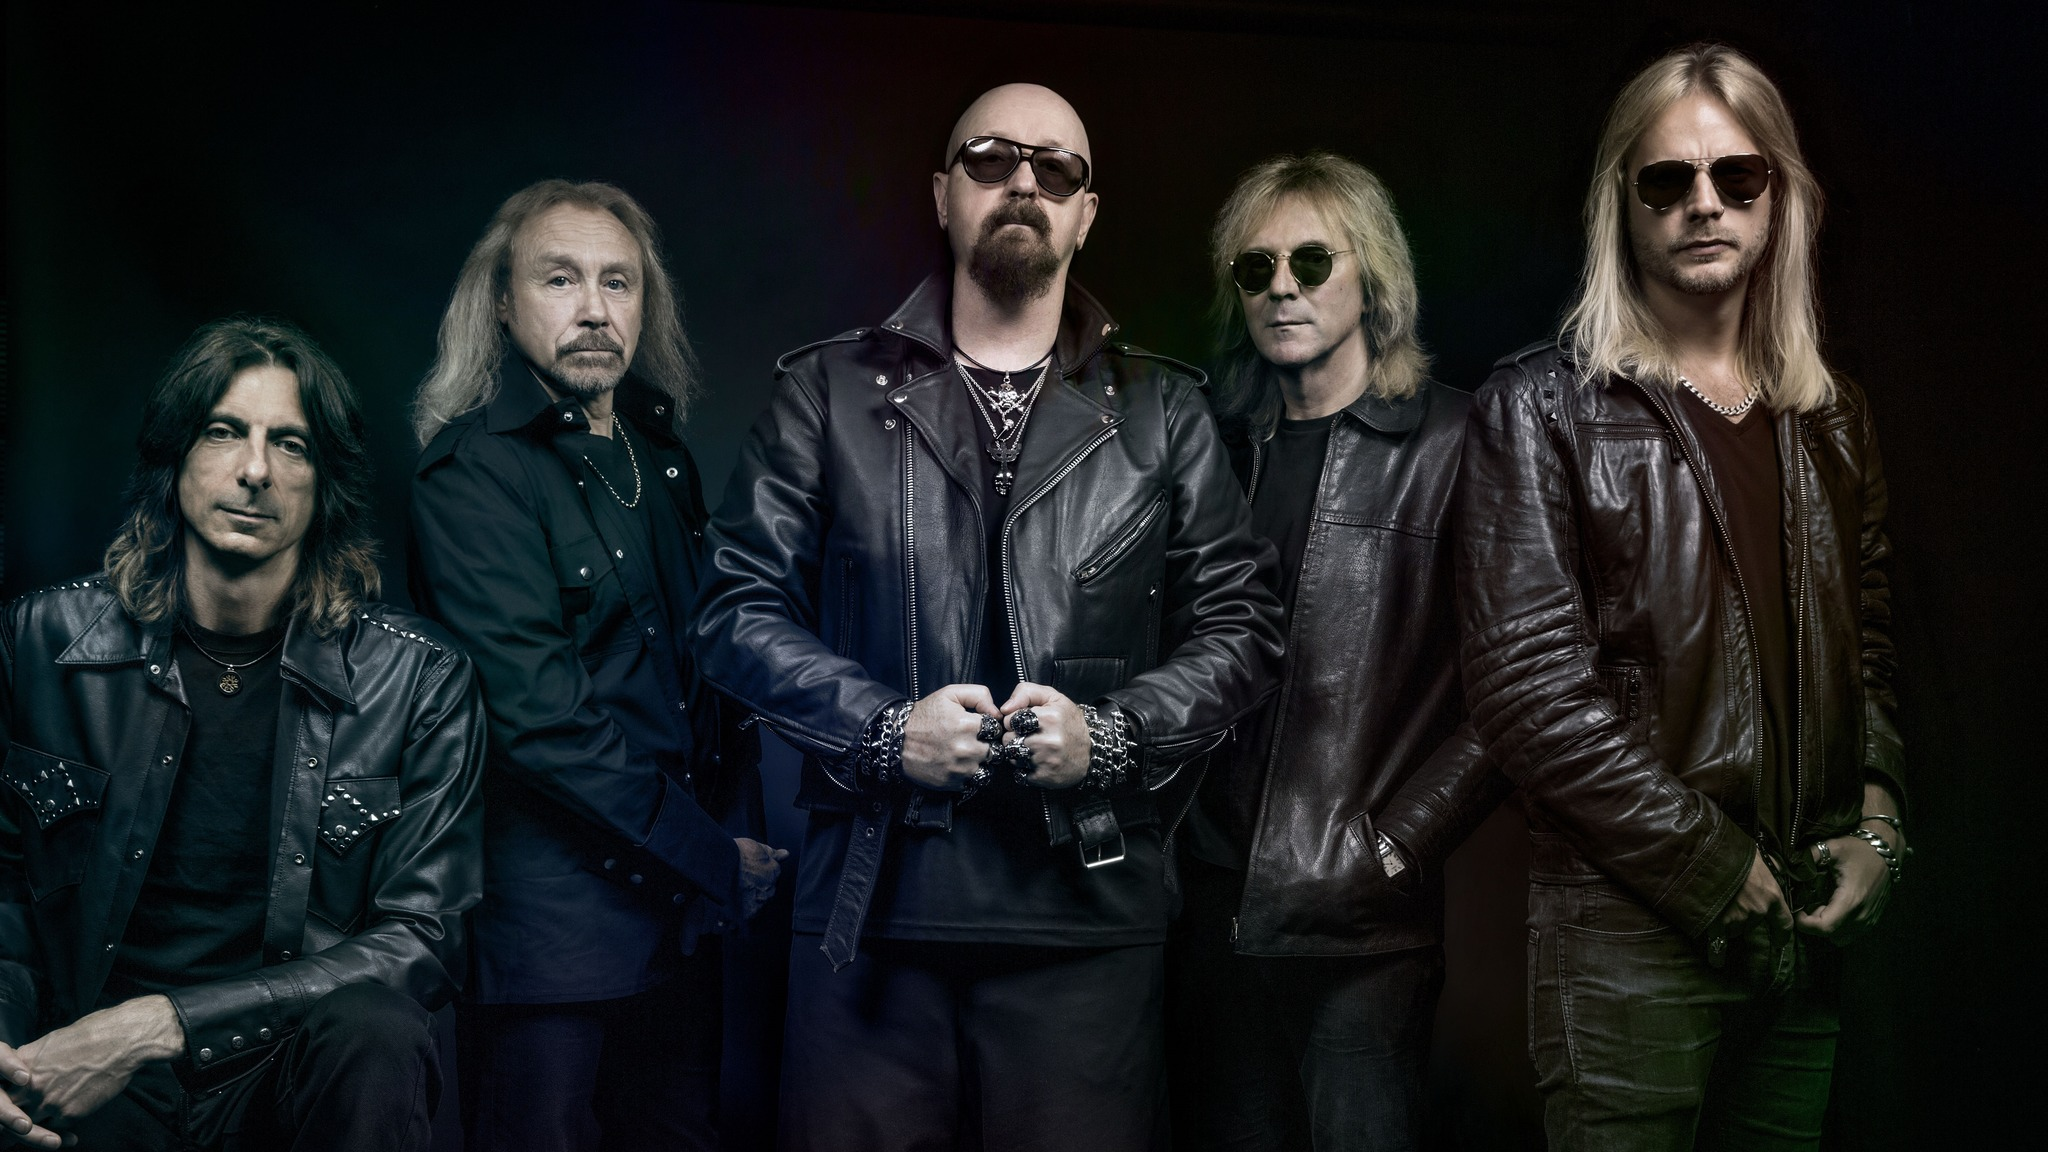 Judas-Priest-FB-Foto.jpg